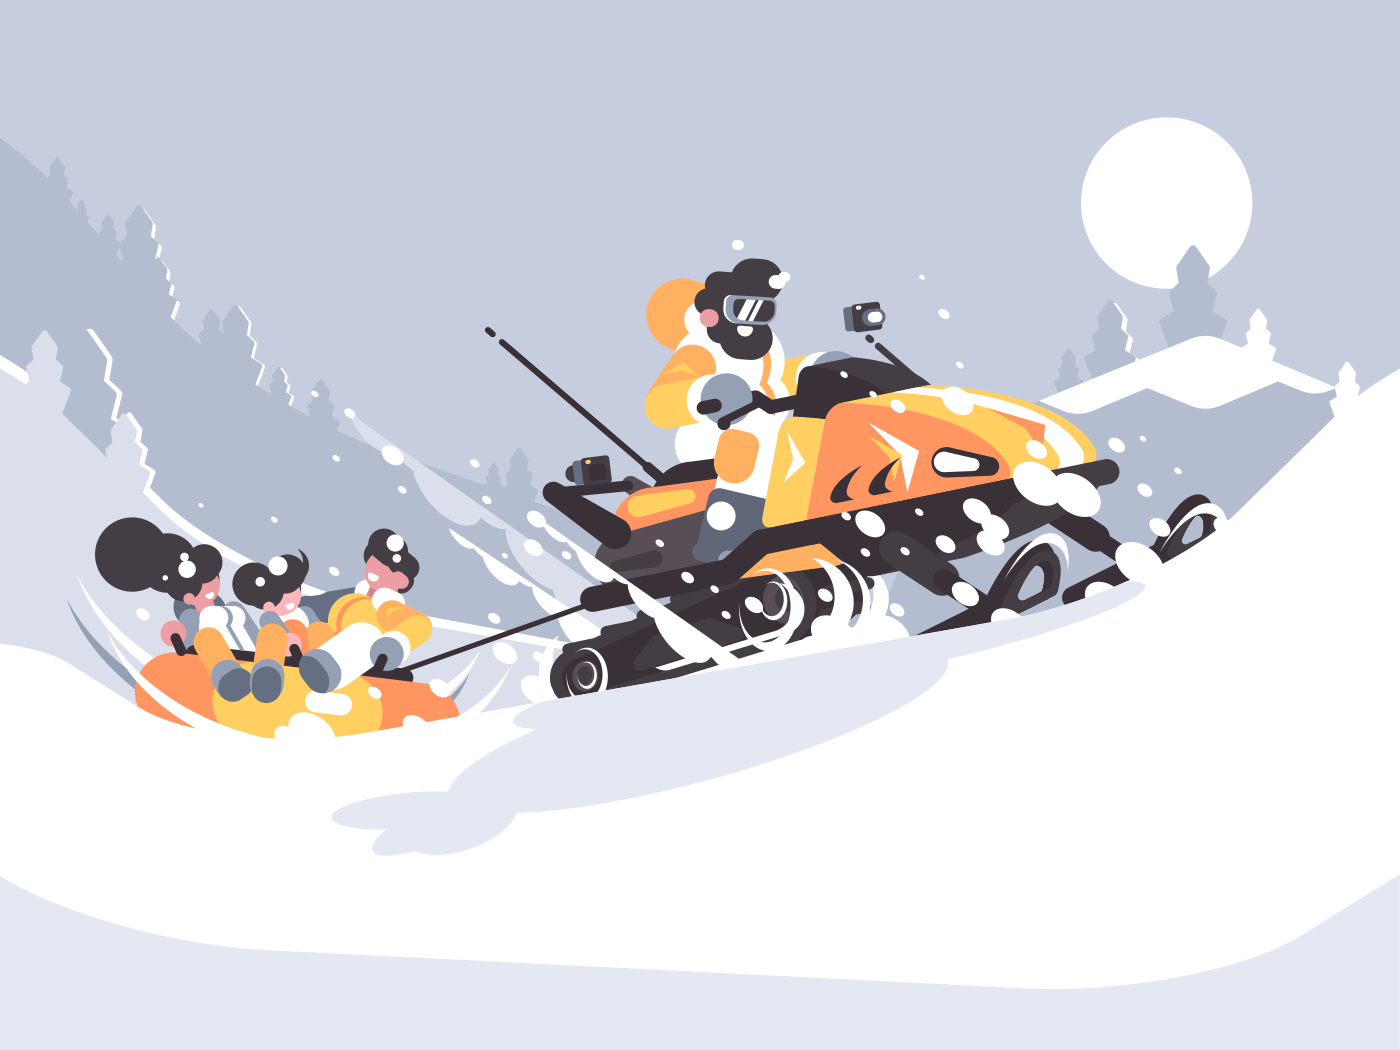 Man on snowmobile drives children. Winter fun in snow. Vector illustration